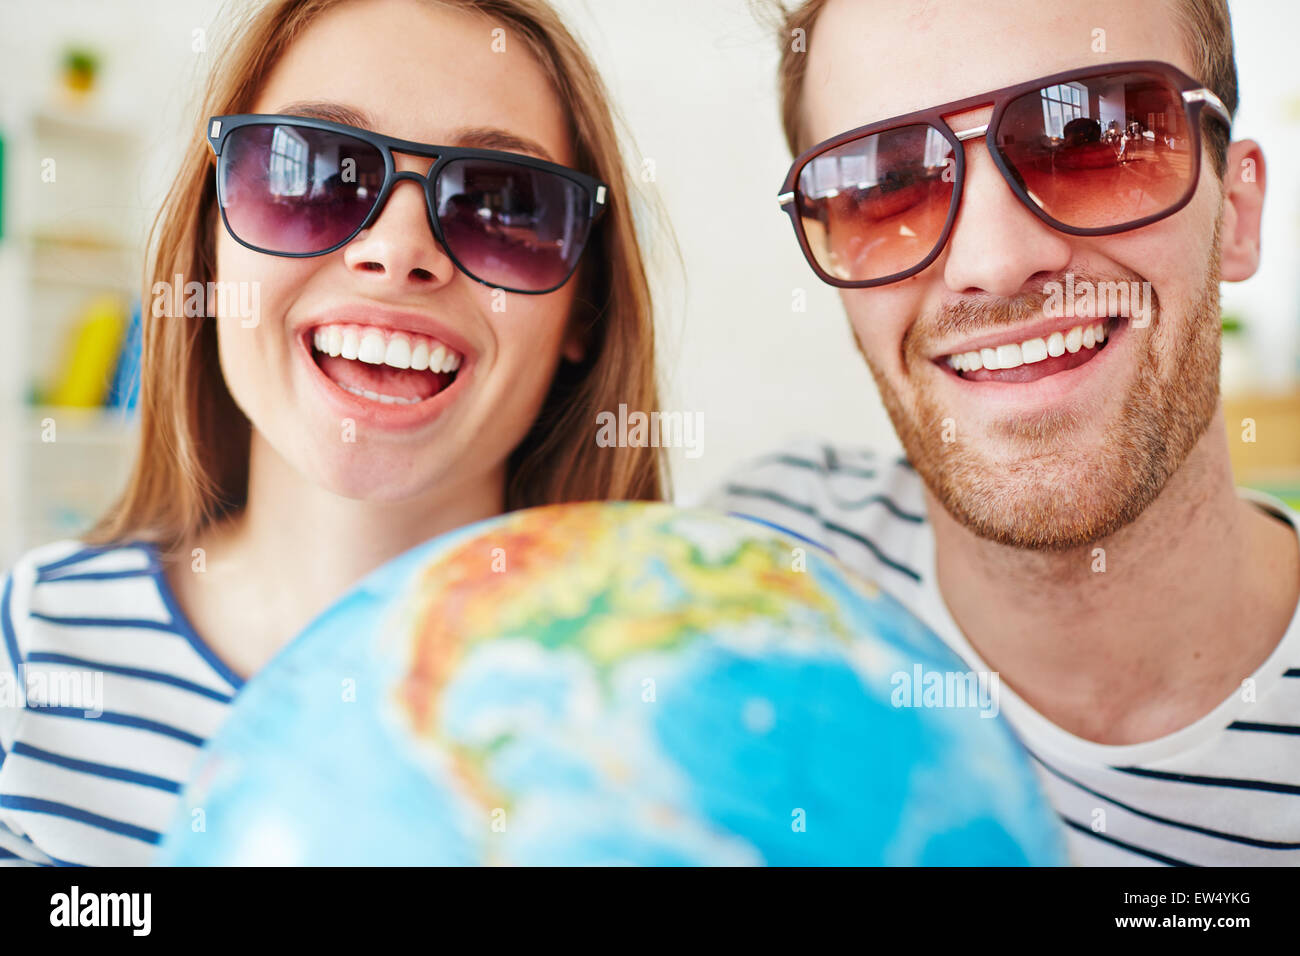 Happy dates looking at camera through sunglasses with toothy smiles - Stock Image